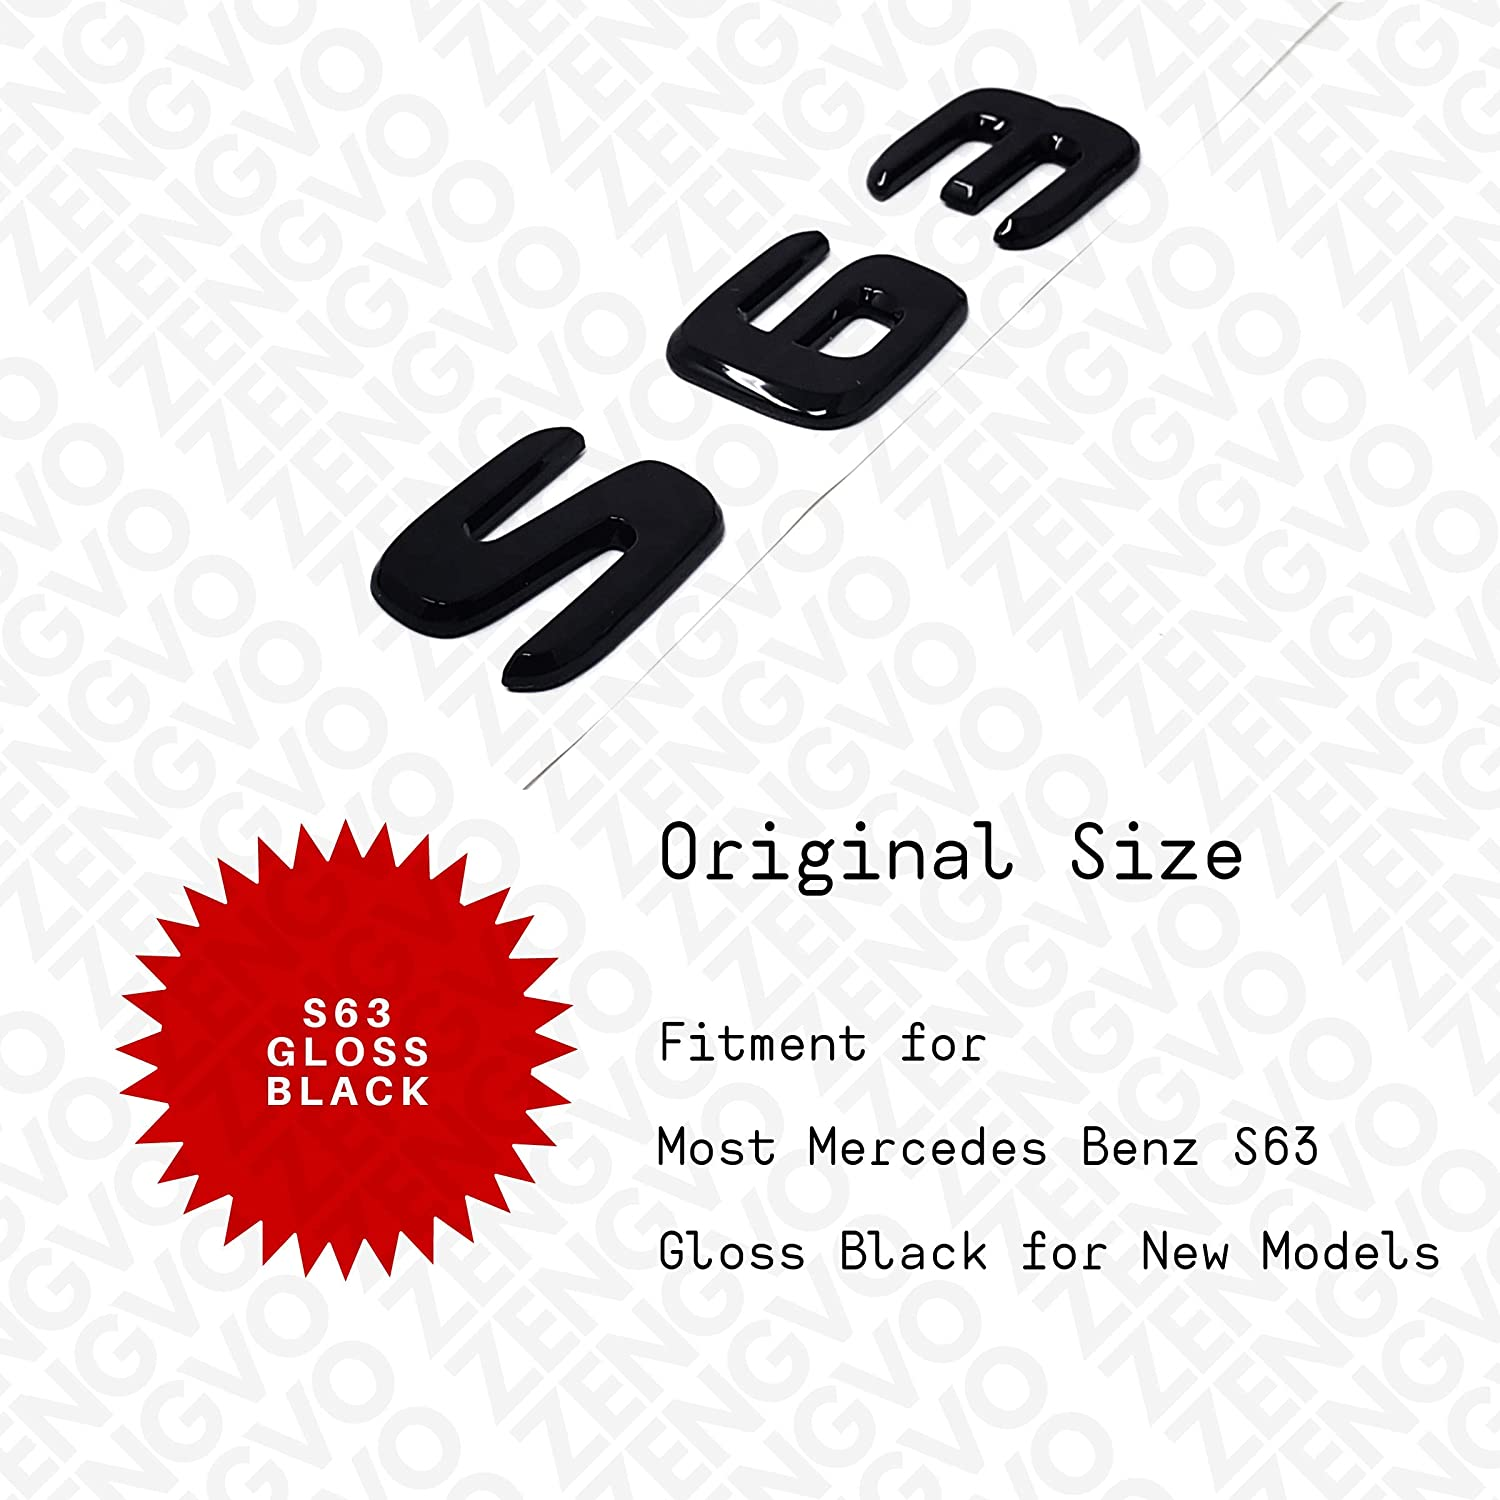 ZENGVO Car Emblem Badge Stickers Decals 3M Letters Logo Universal Fitment For BENZ AMG S63 NEW STYLE pack of 1 GLOSS BLACK CLA180 CLA200 CLA220 CLA250 CLA45 CDI // 4 MATIC AMG SPORT only glossy BLUE EFFICIENCY B160 B180 B200 B220 B250 ML250 ML350 ML400